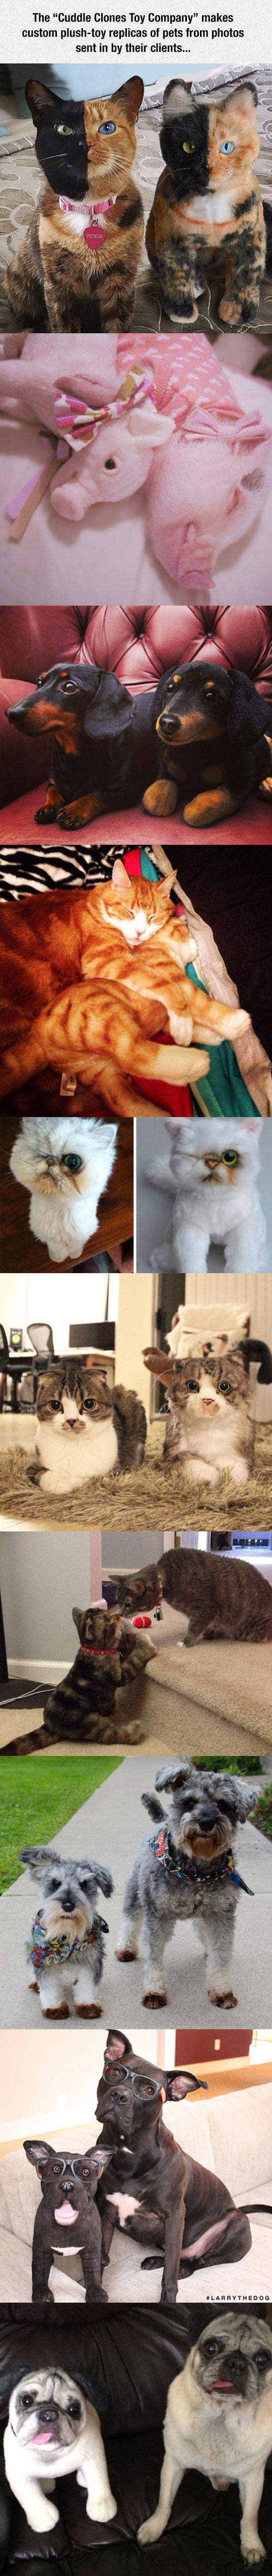 plush-toys-pets-animals